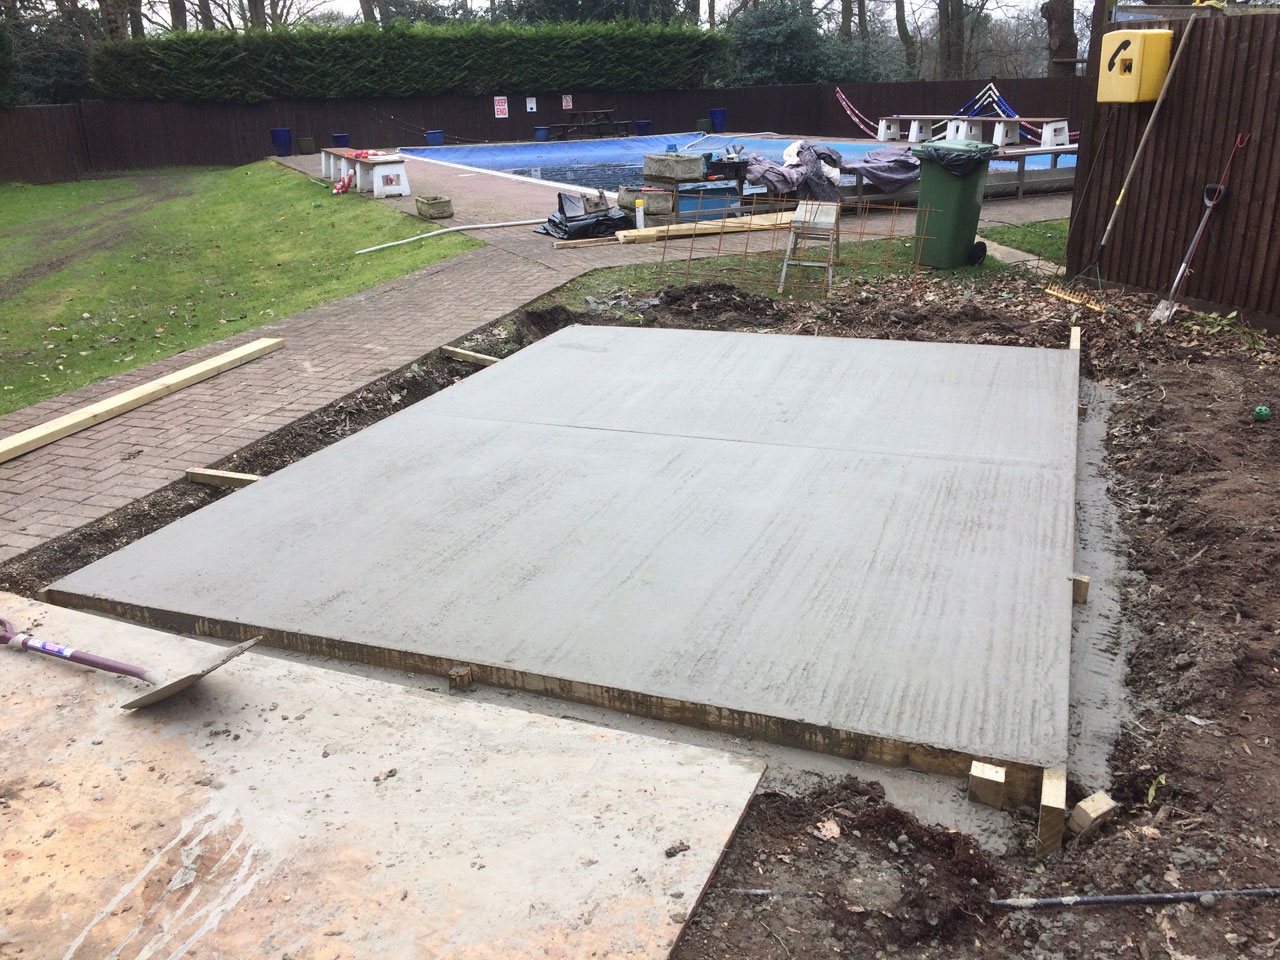 Foundations Berkshire Hampshire Surrey - small foundations for sheds and outbuildings Berkshire Hampshire Surrey